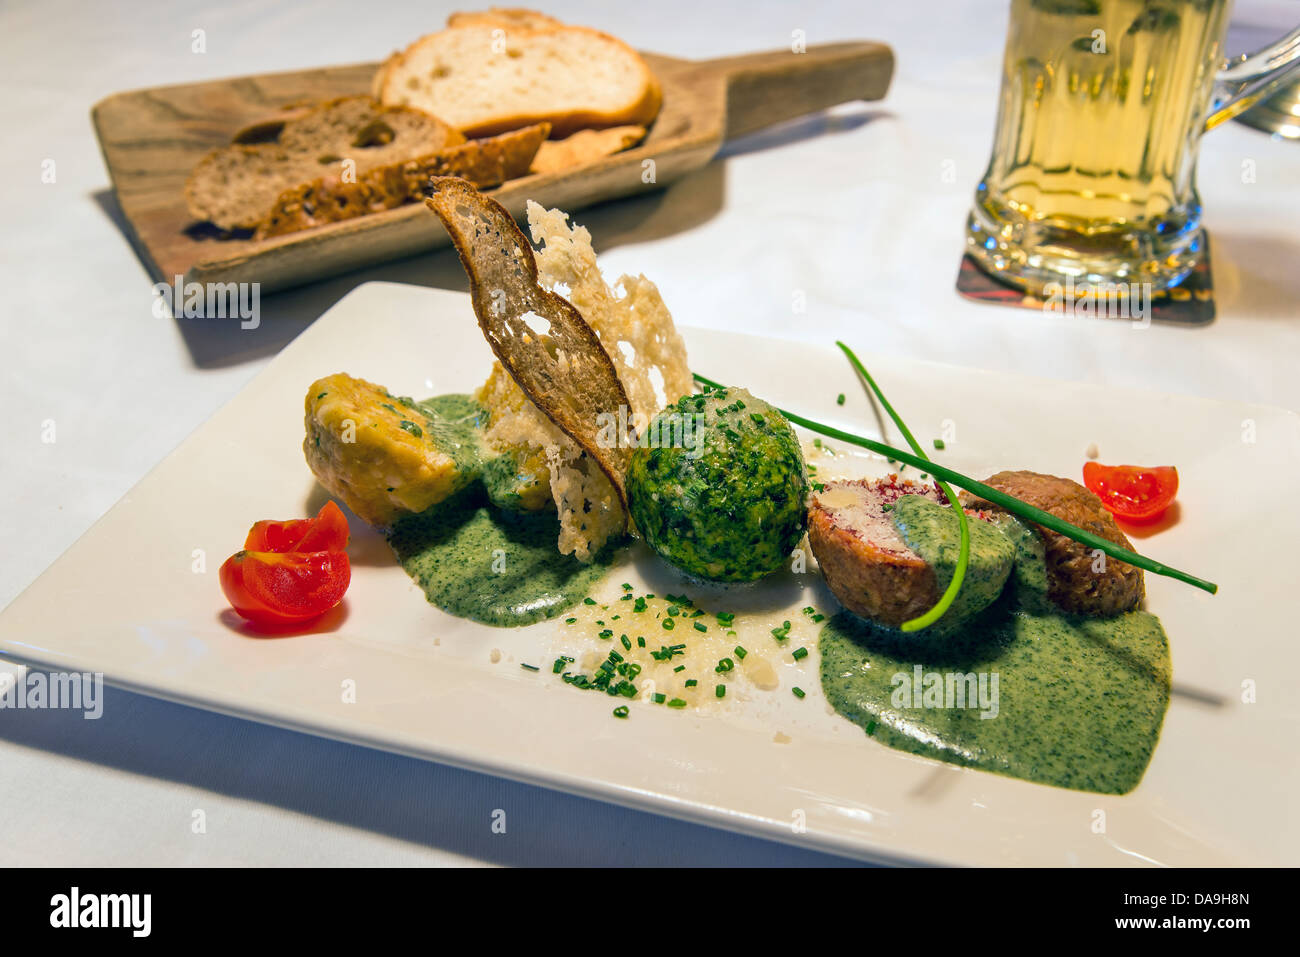 Knödel or Canederli bread dumplings, a typical speciality of Alto Adige or South Tyrol, Italy - Stock Image